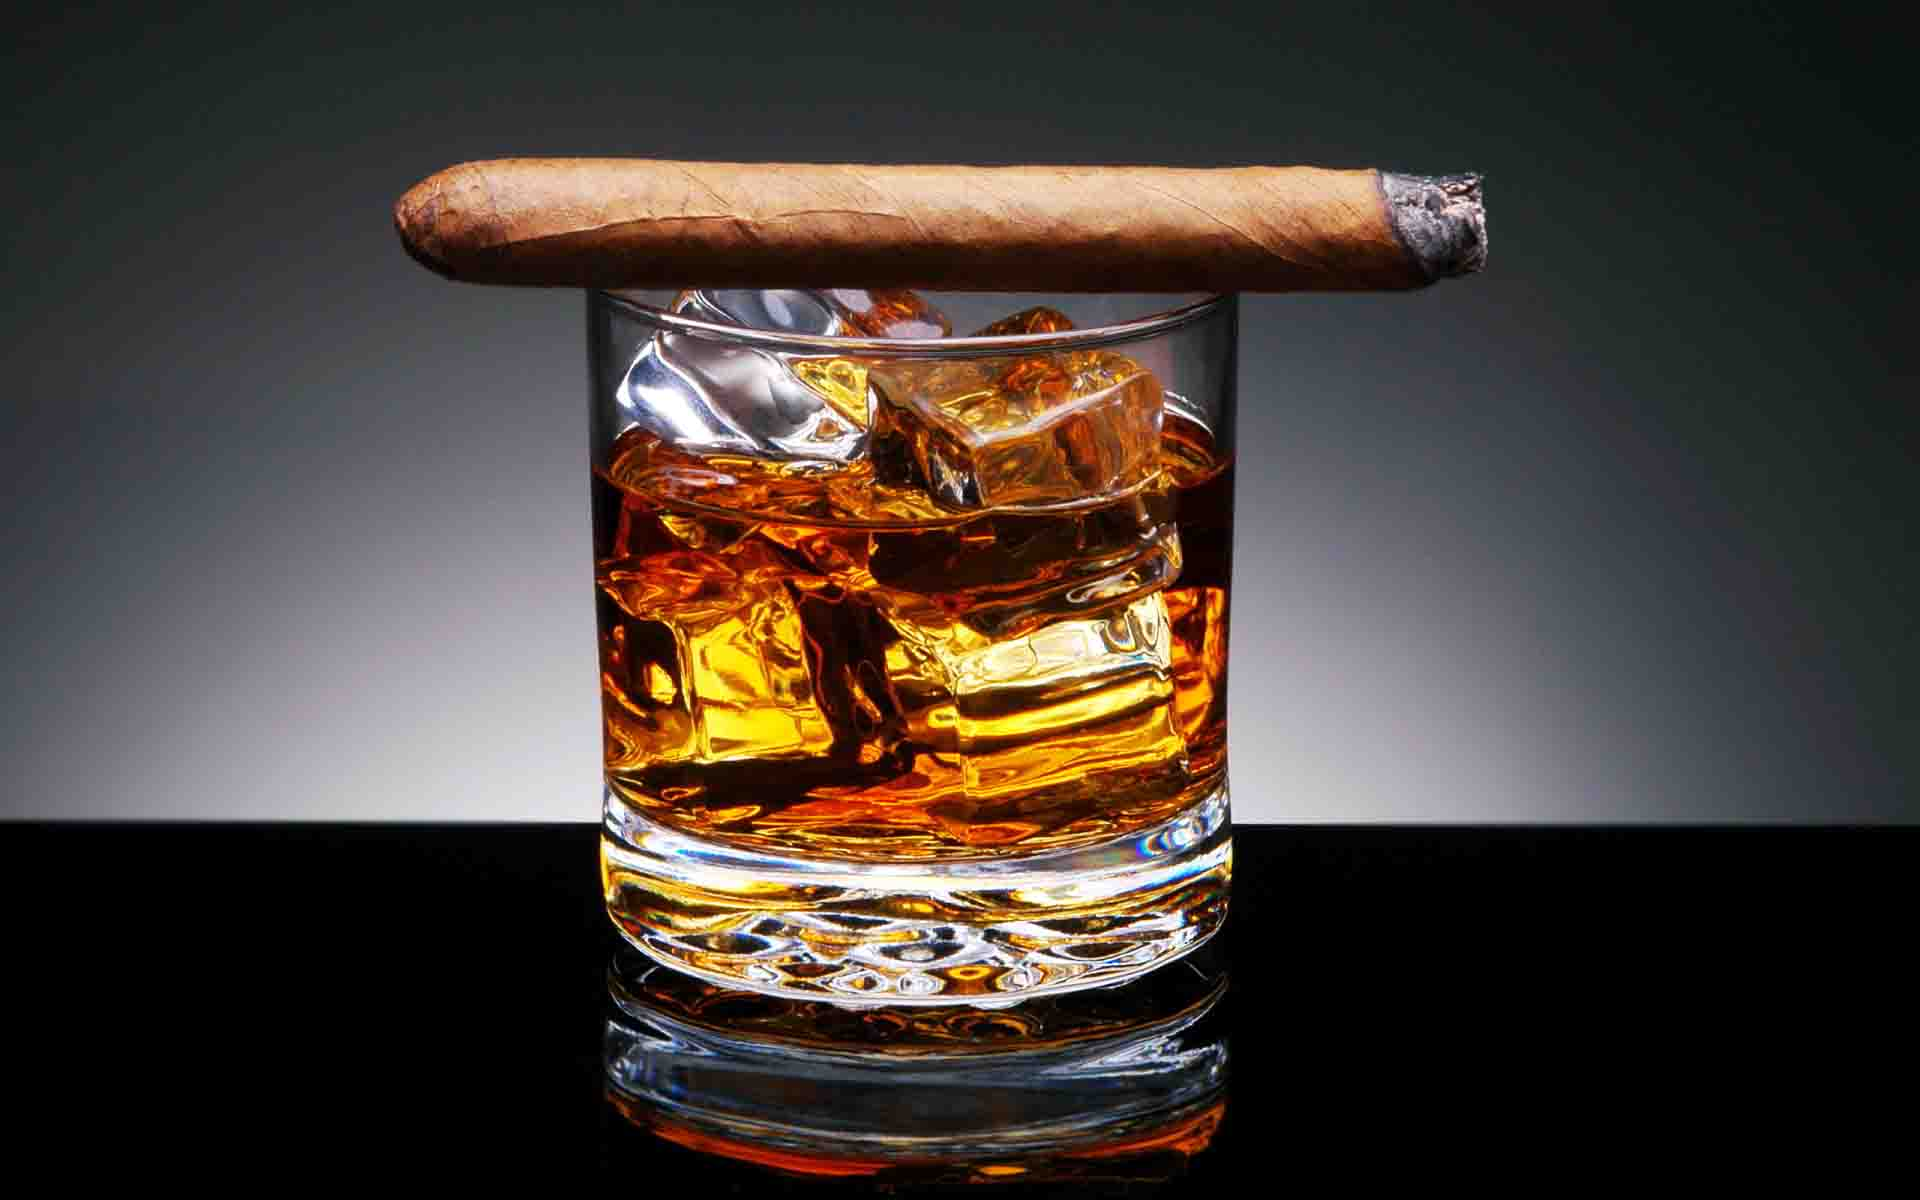 Whiskey in glass with cigar The whiskey was initially colorless